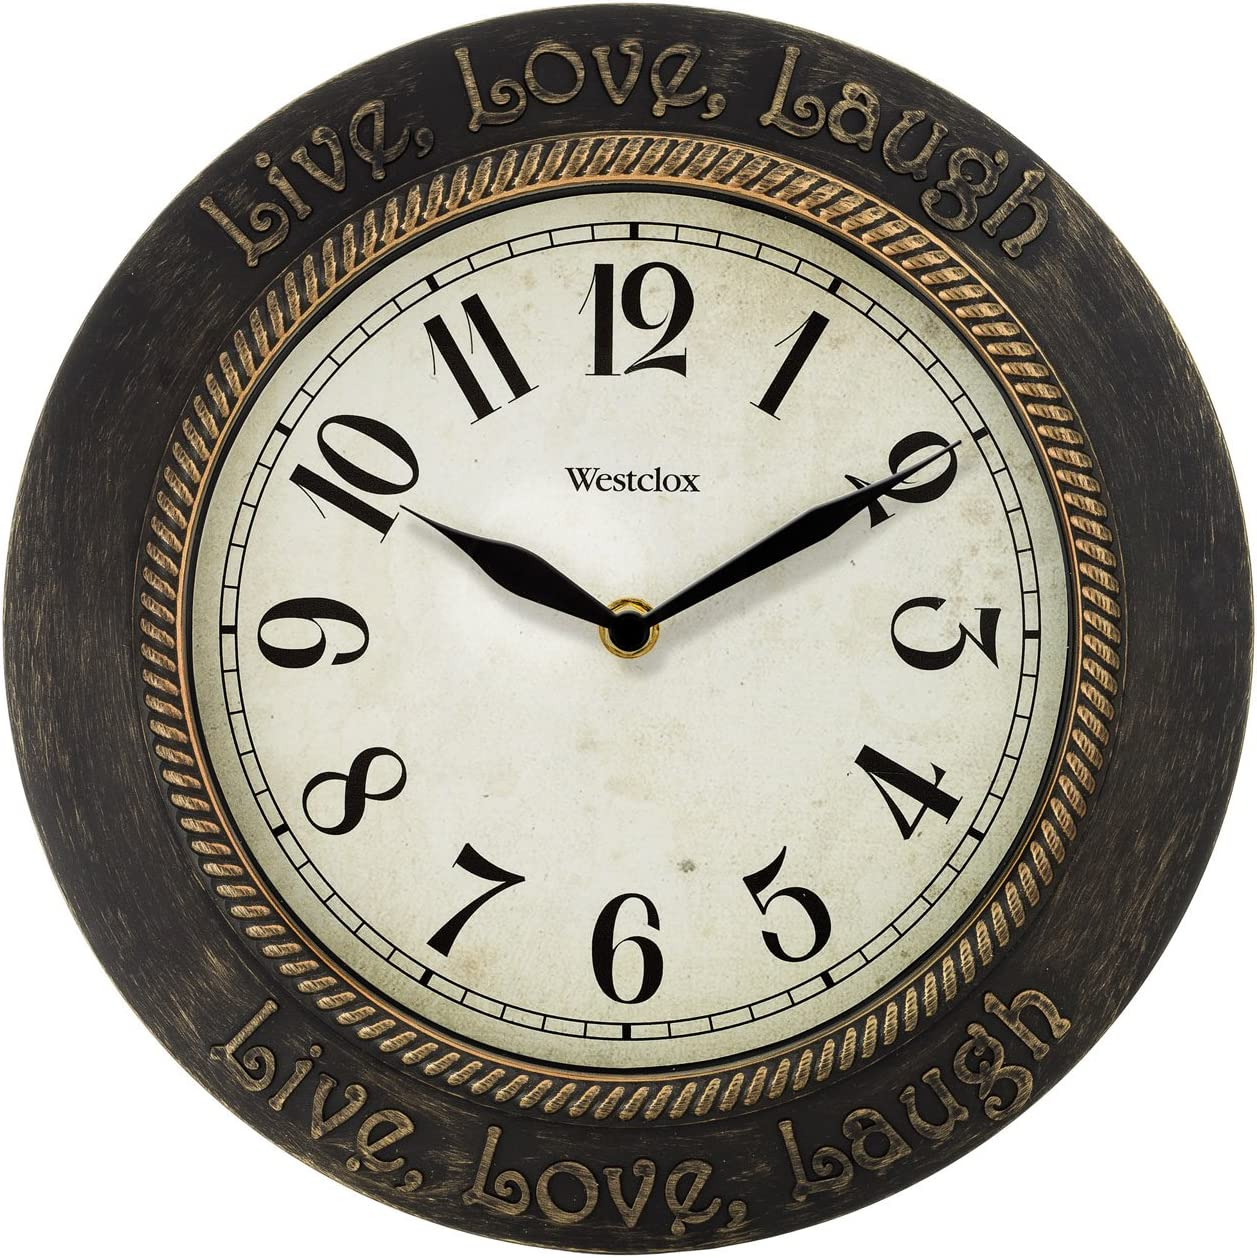 Westclox W32097 11 in. Live Love Laugh Wall Clock, Brown